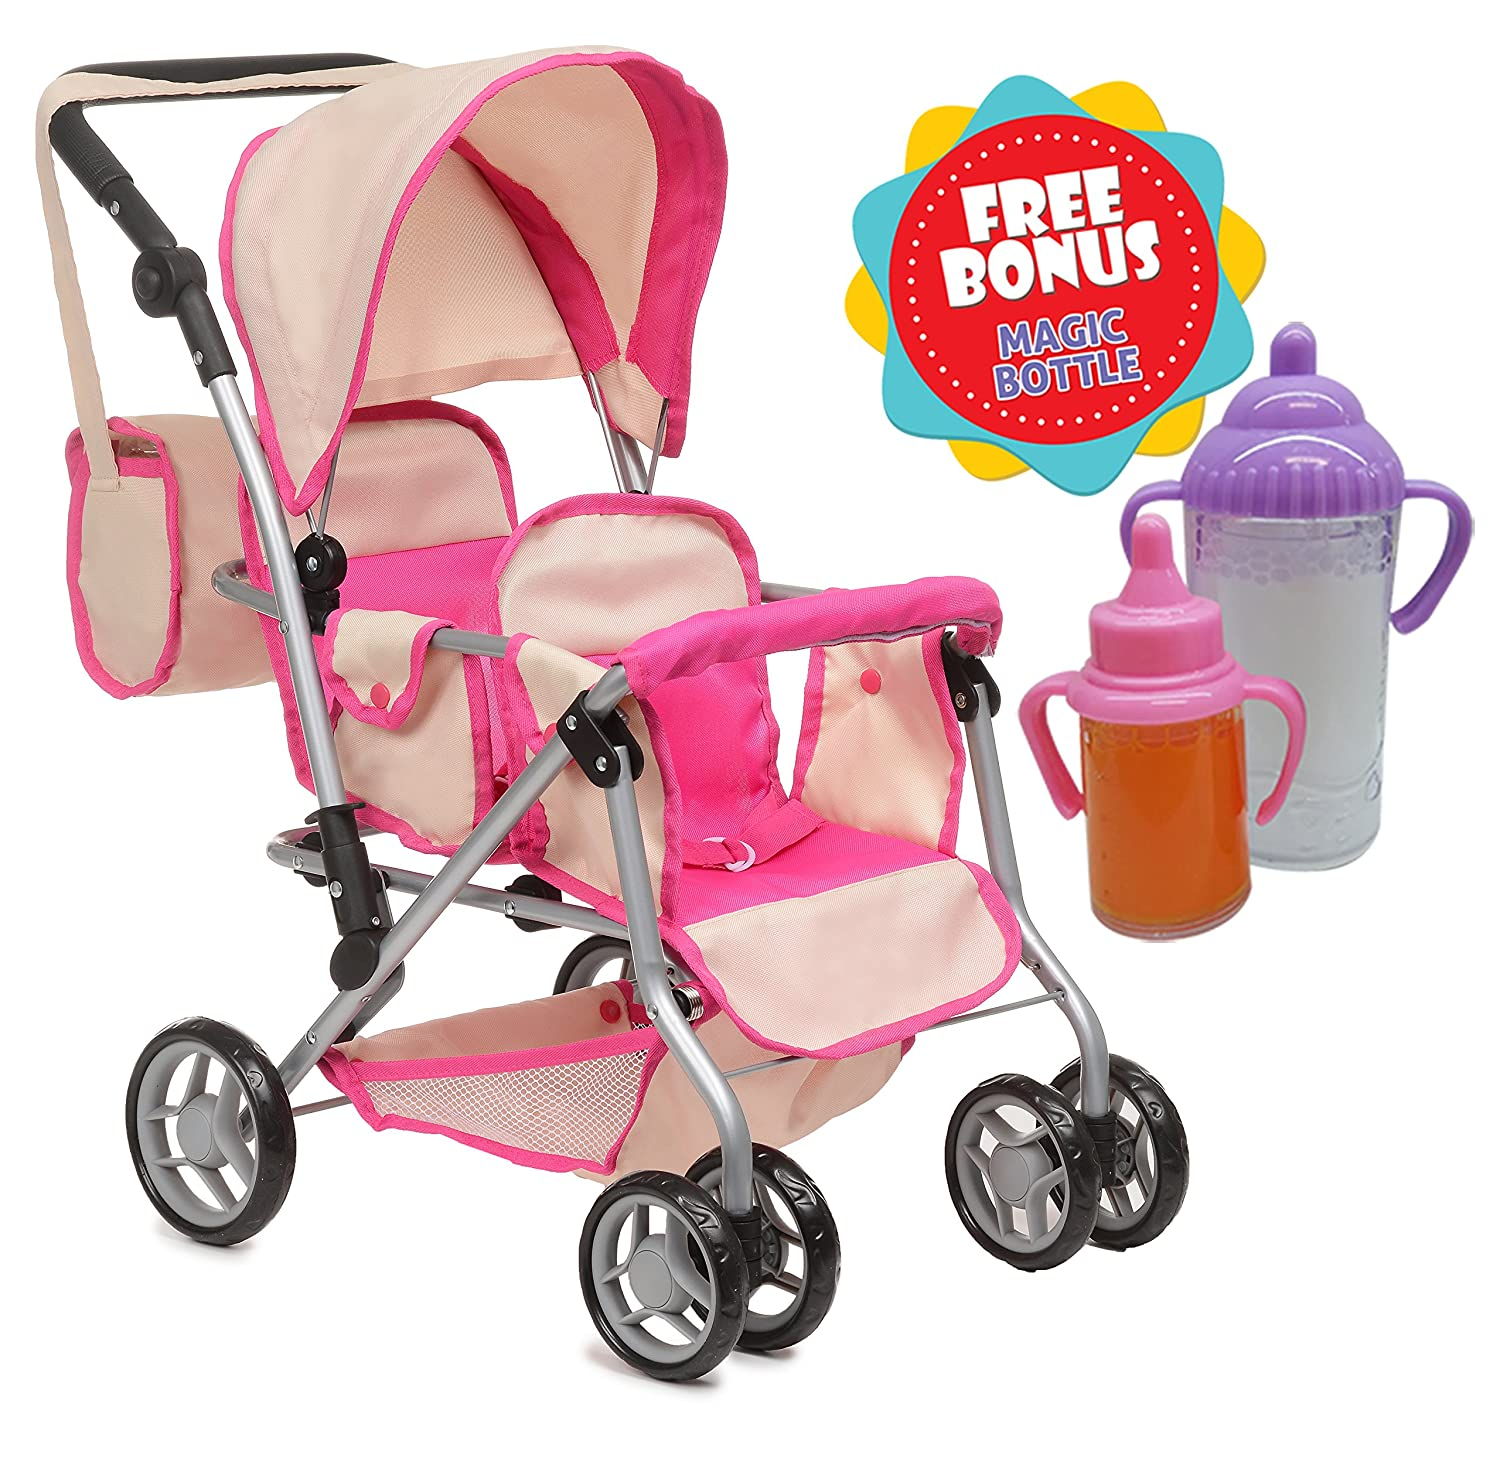 Exquisite Buggy TWIN DOLL Stroller with Diaper Bag and Swivel Wheels Soft Pink & f White Design With 2 FREE Magic Bottles